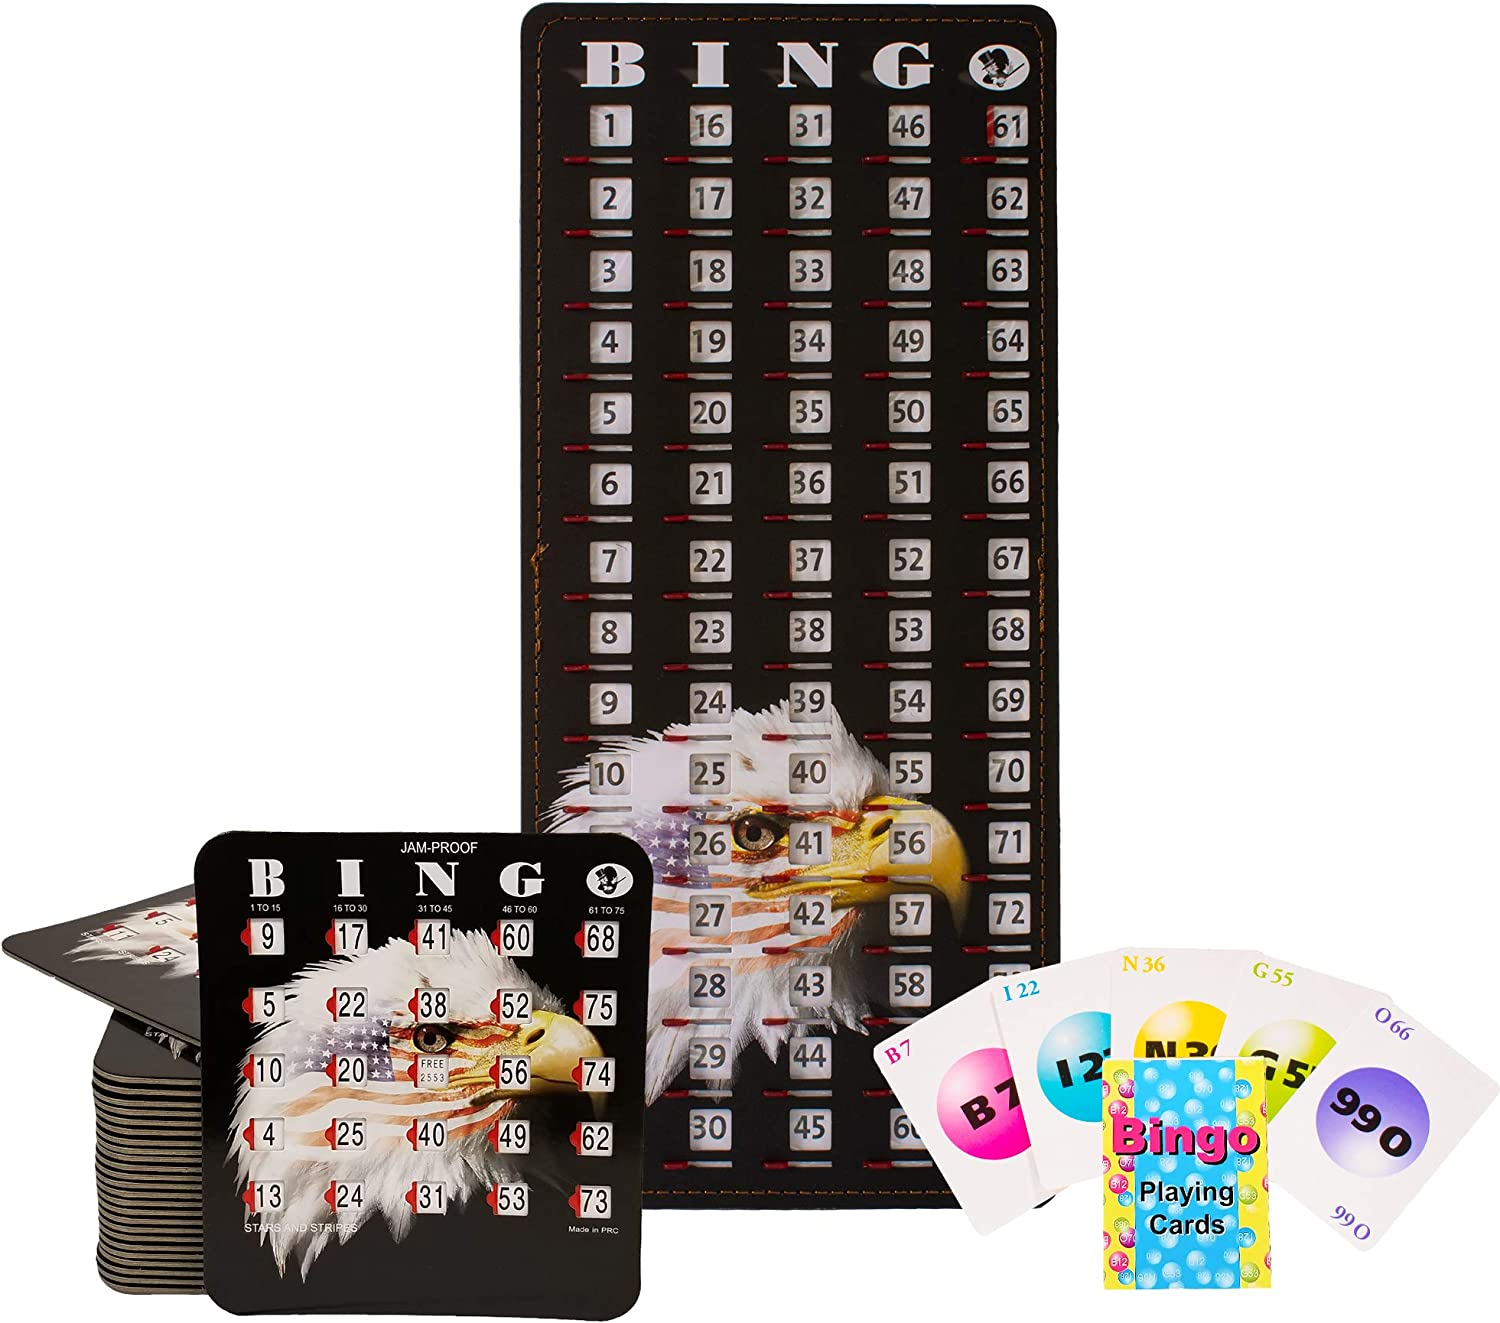 Discount is Factory outlet also underway MR CHIPS Jam-Proof Bingo Cards Reusable Sliding with Windows 25